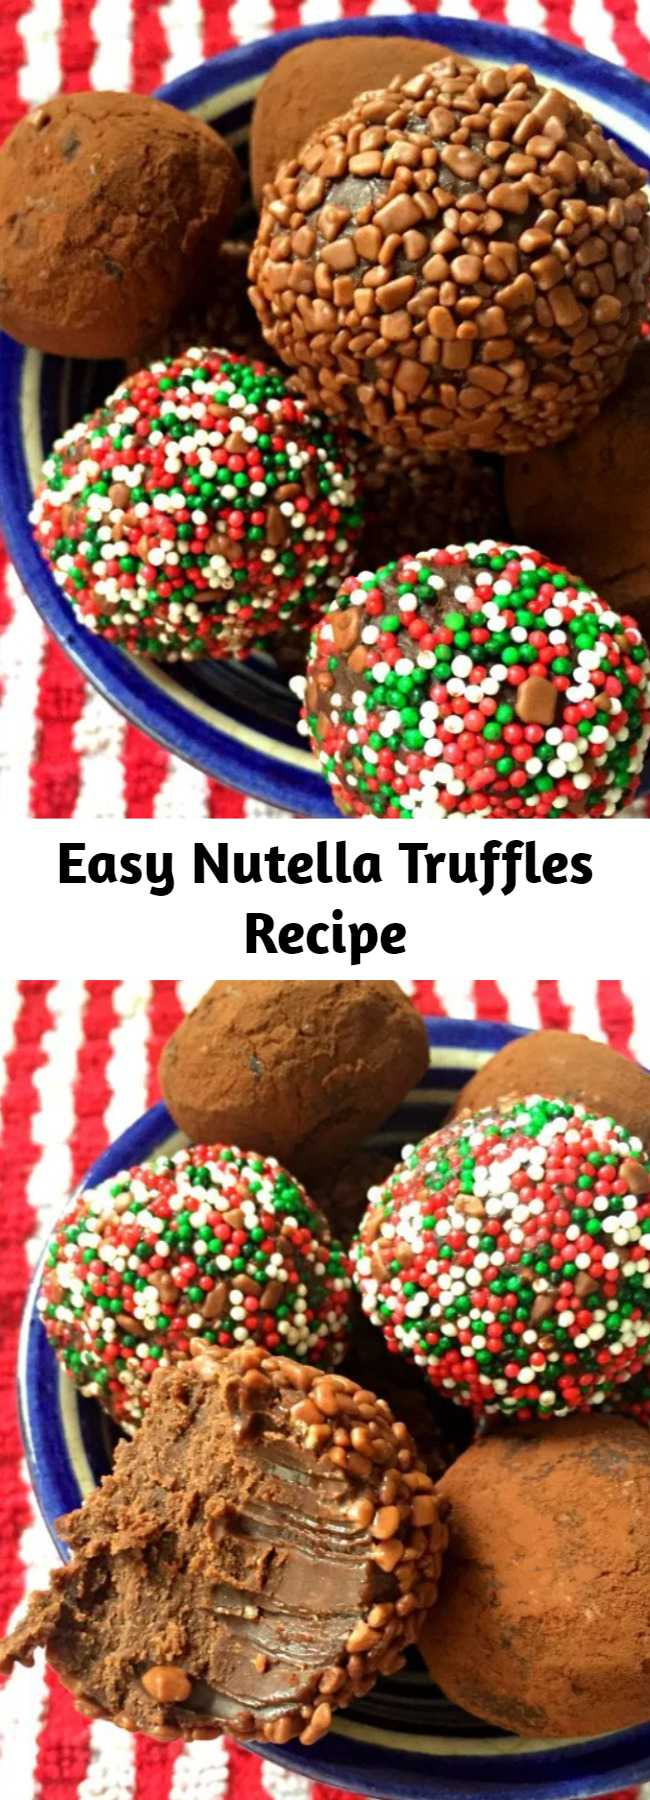 Easy Nutella Truffles Recipe - Easy Nutella Truffles with all the yummy hazlenut flavour of Nutella – and only three ingredients! They're no-bake, with all the usual deliciousness of a regular chocolate truffle.. and then the extra chocolate hazlenut hit of Nutella 😍.